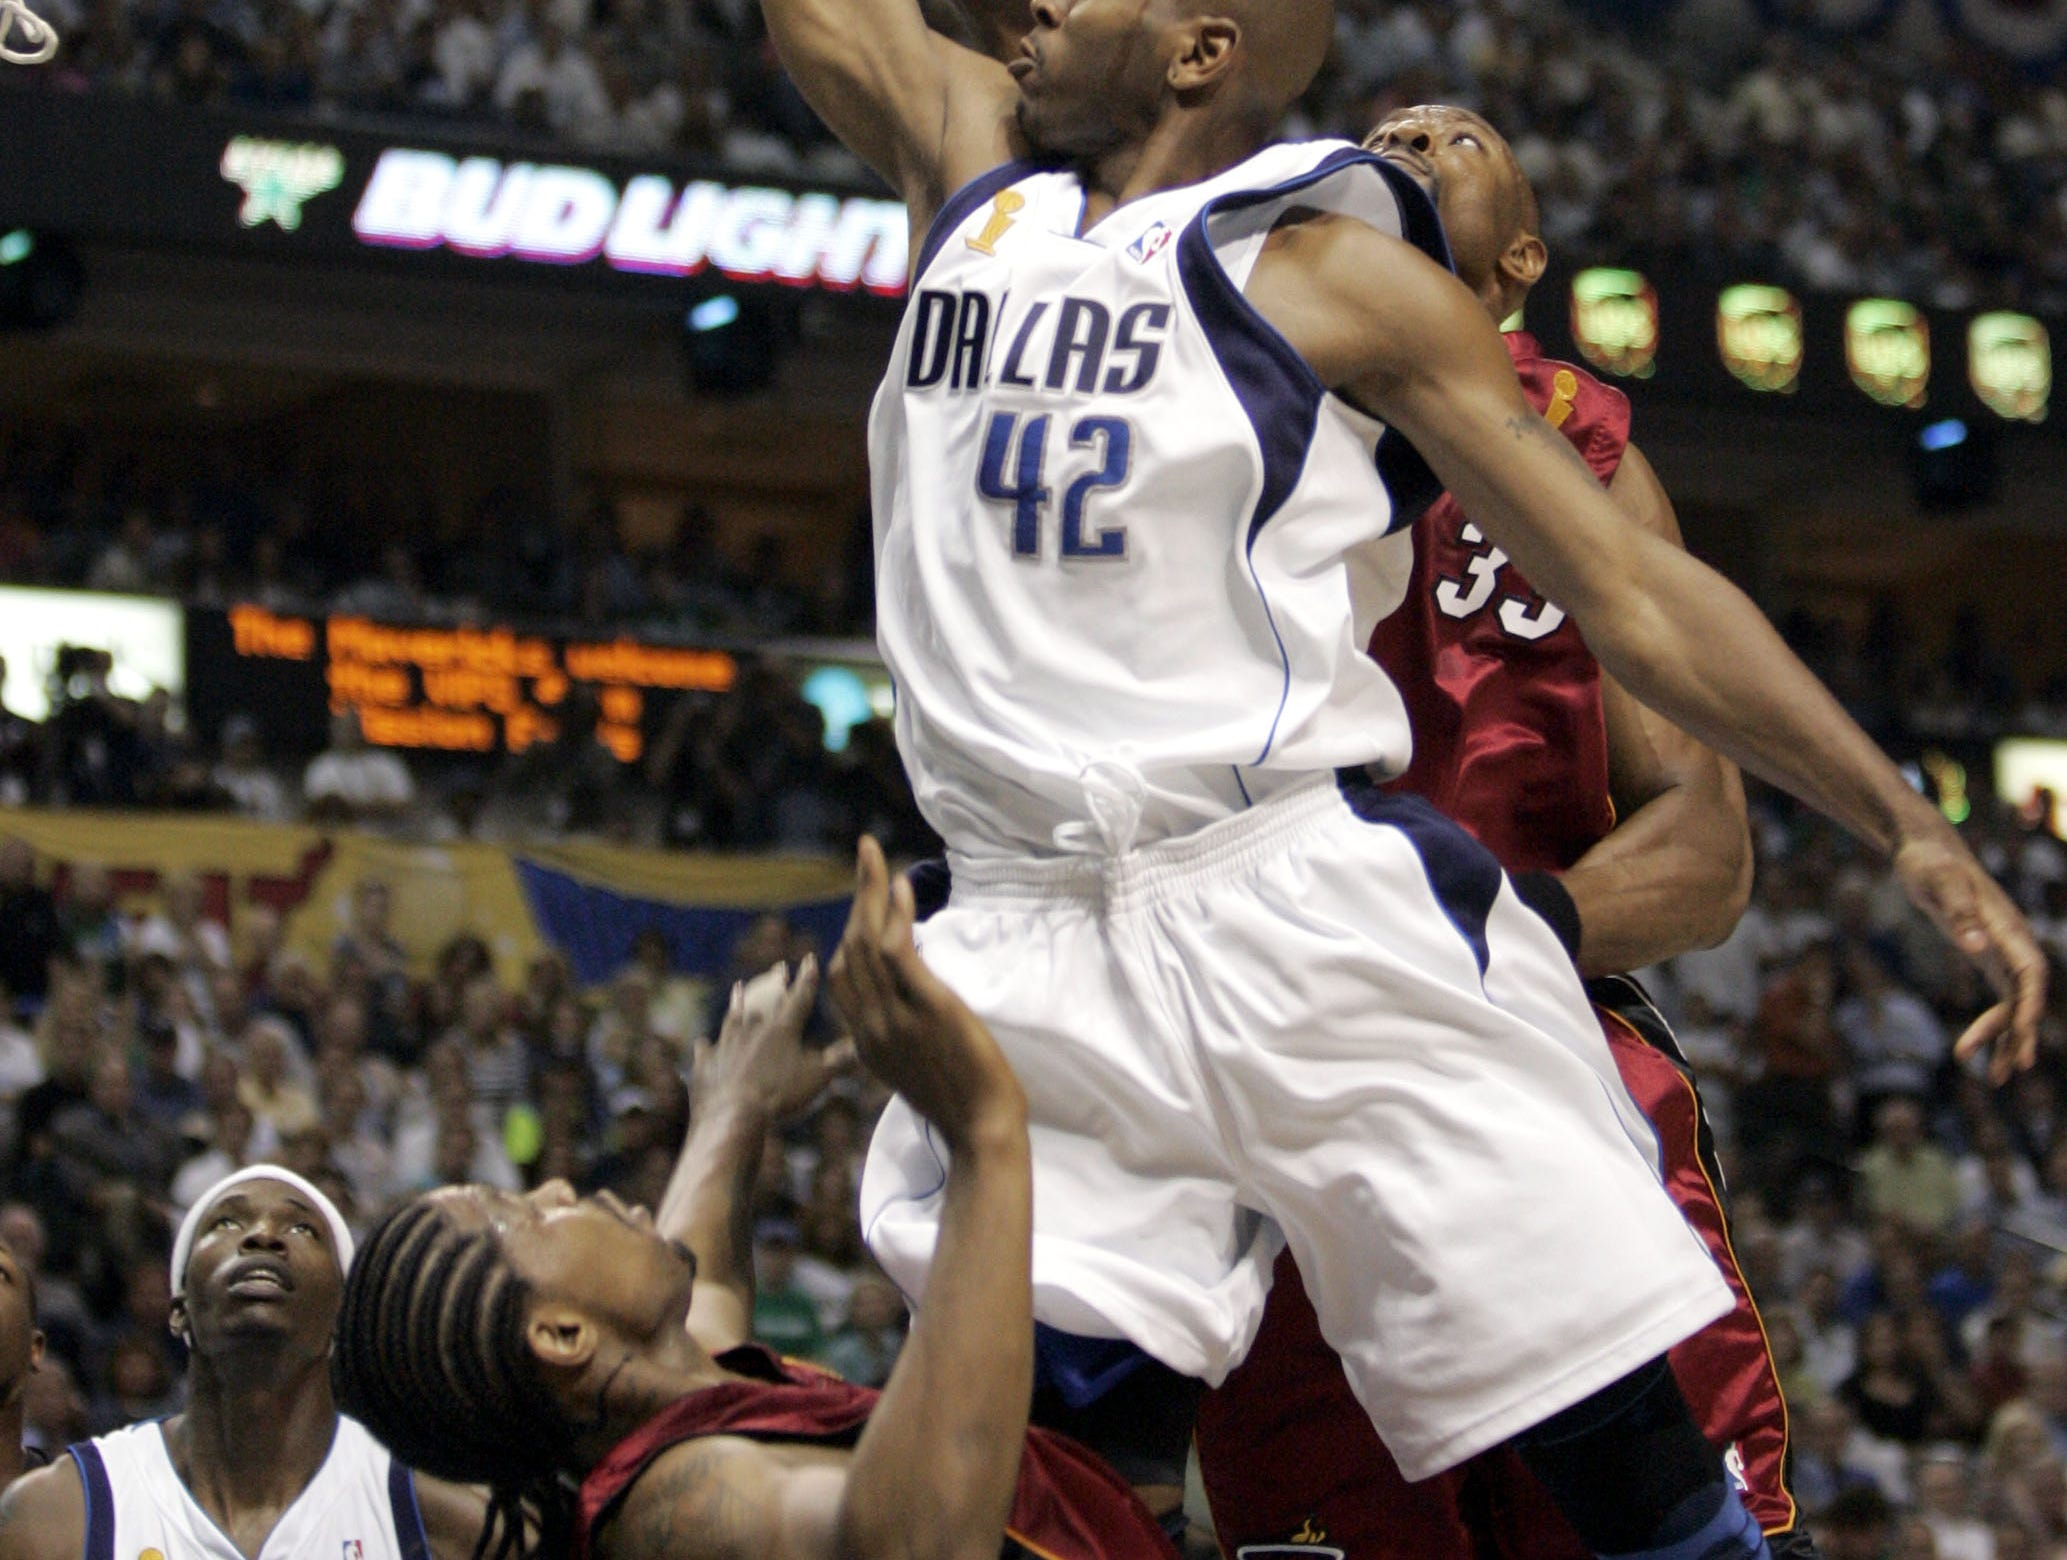 Dallas Mavericks' Jerry Stackhouse (42) takes a gliding lay up as Miami Heat's Alonzo Mourning (33) and Udonis Haslem (40) defend in the second quarter in Game 6 of the NBA basketball finals in Dallas, Tuesday, June 20, 2006.